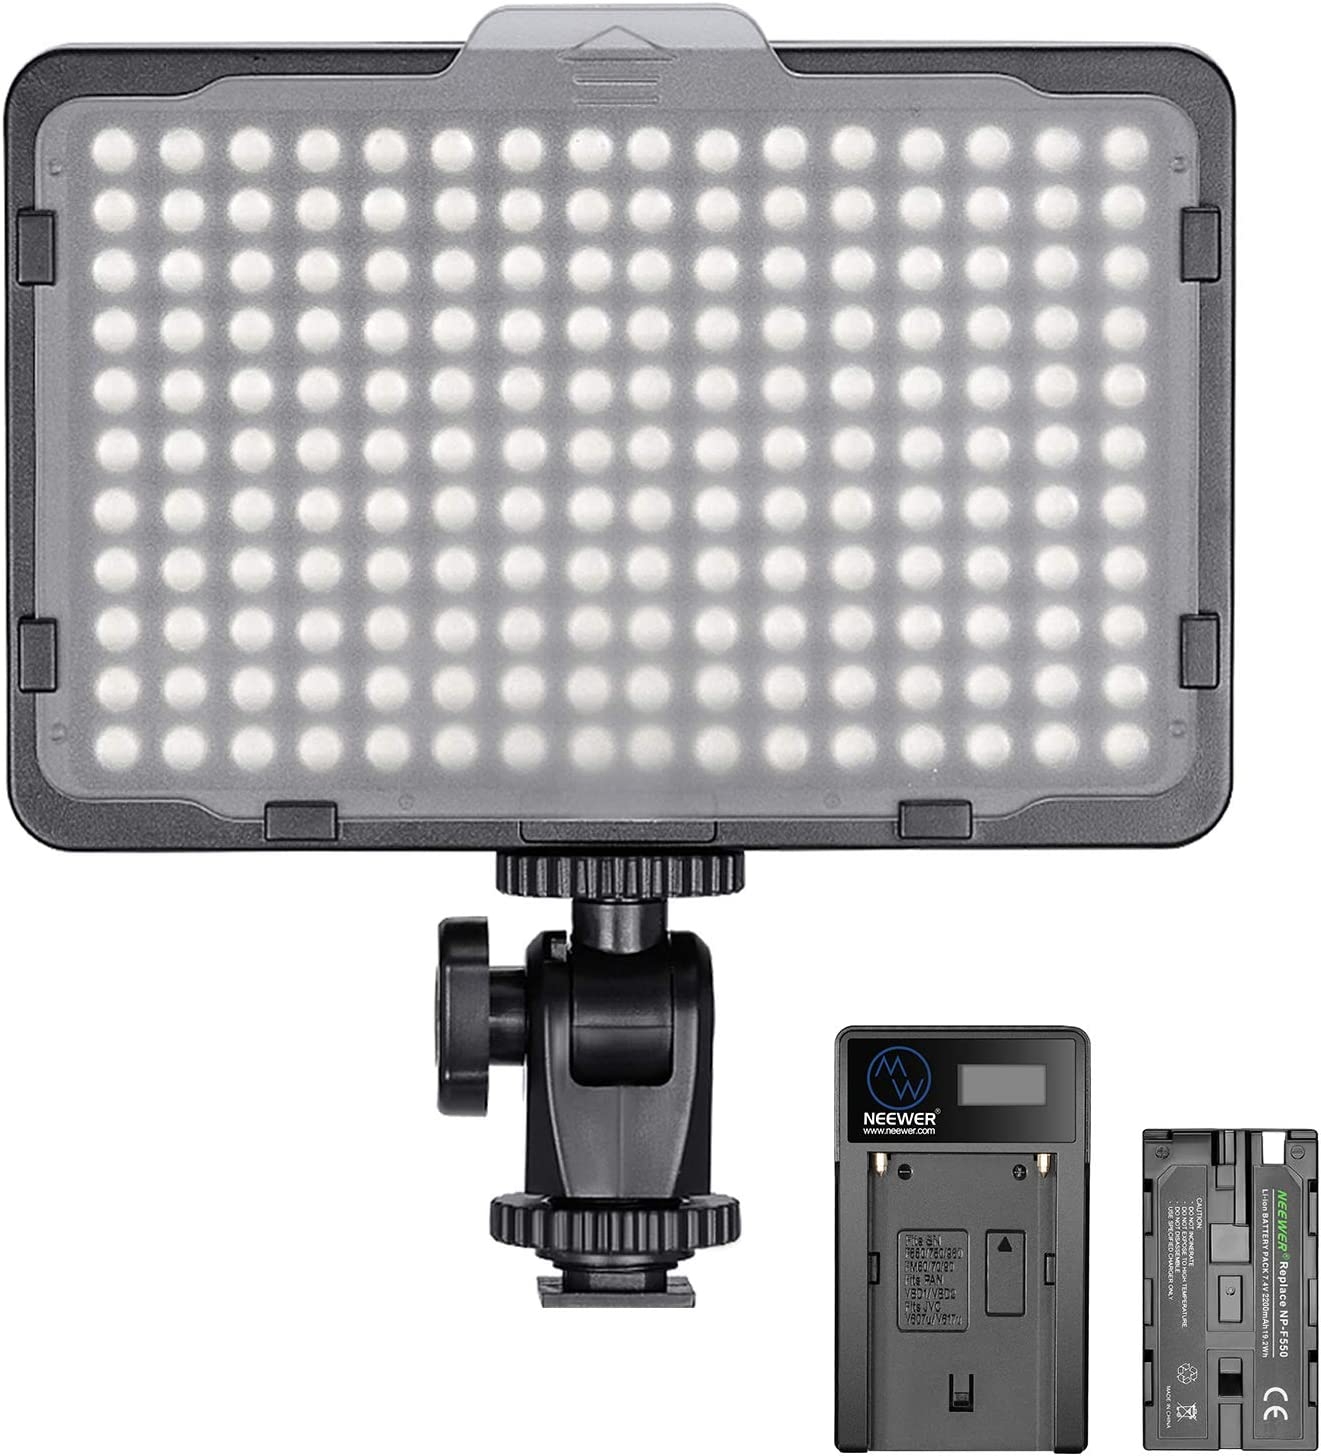 Neewer Pannello Luce 176 LED Dimmerabile 5600K On-camera con Batteria 2200mAh & Caricabatterie a USB